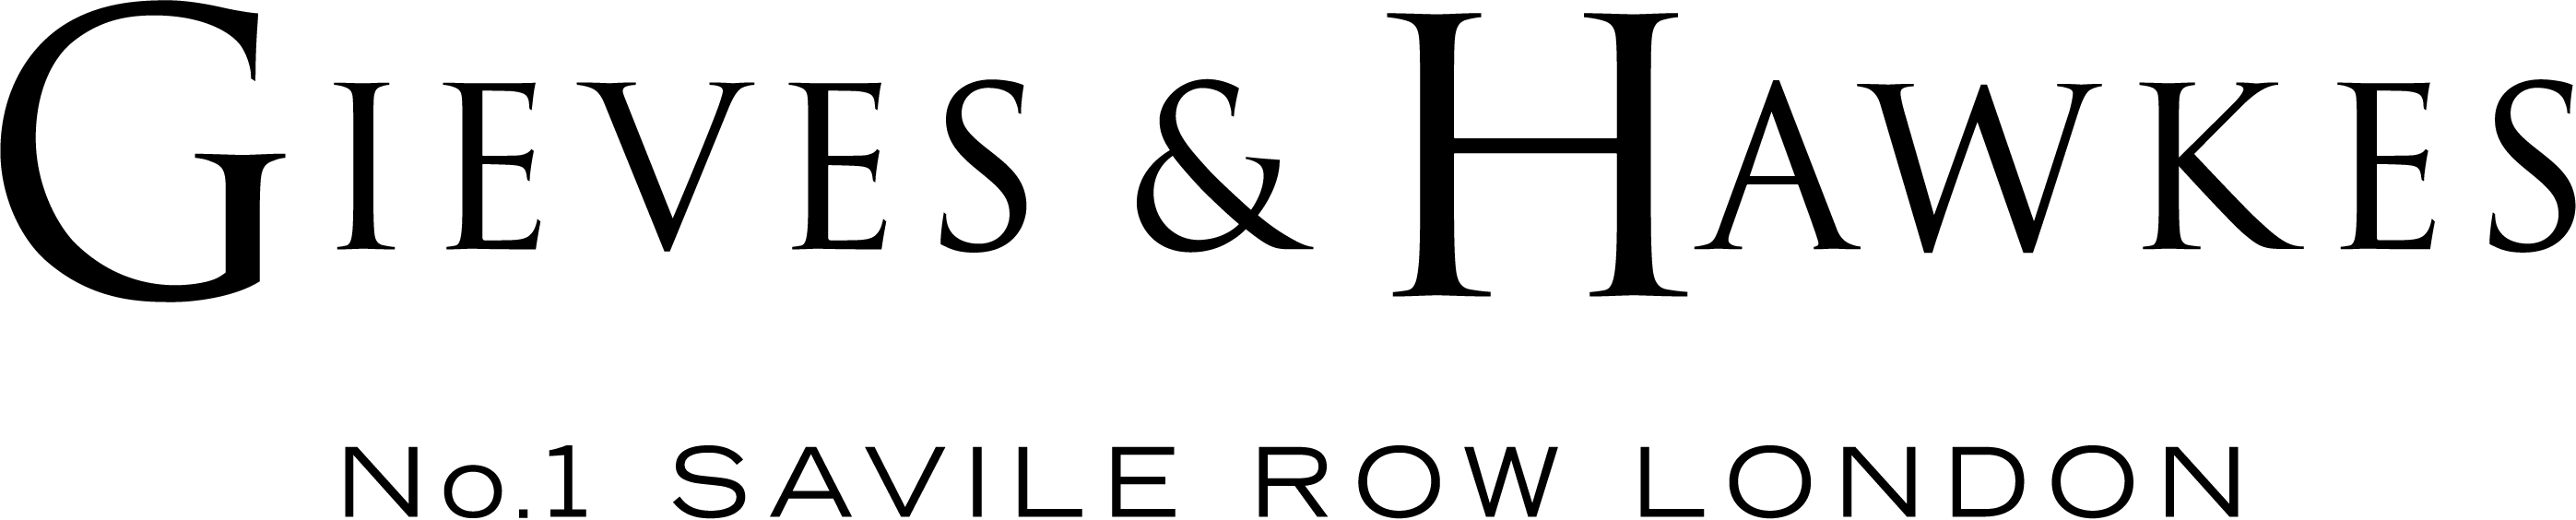 Gieves & Hawkes's logo